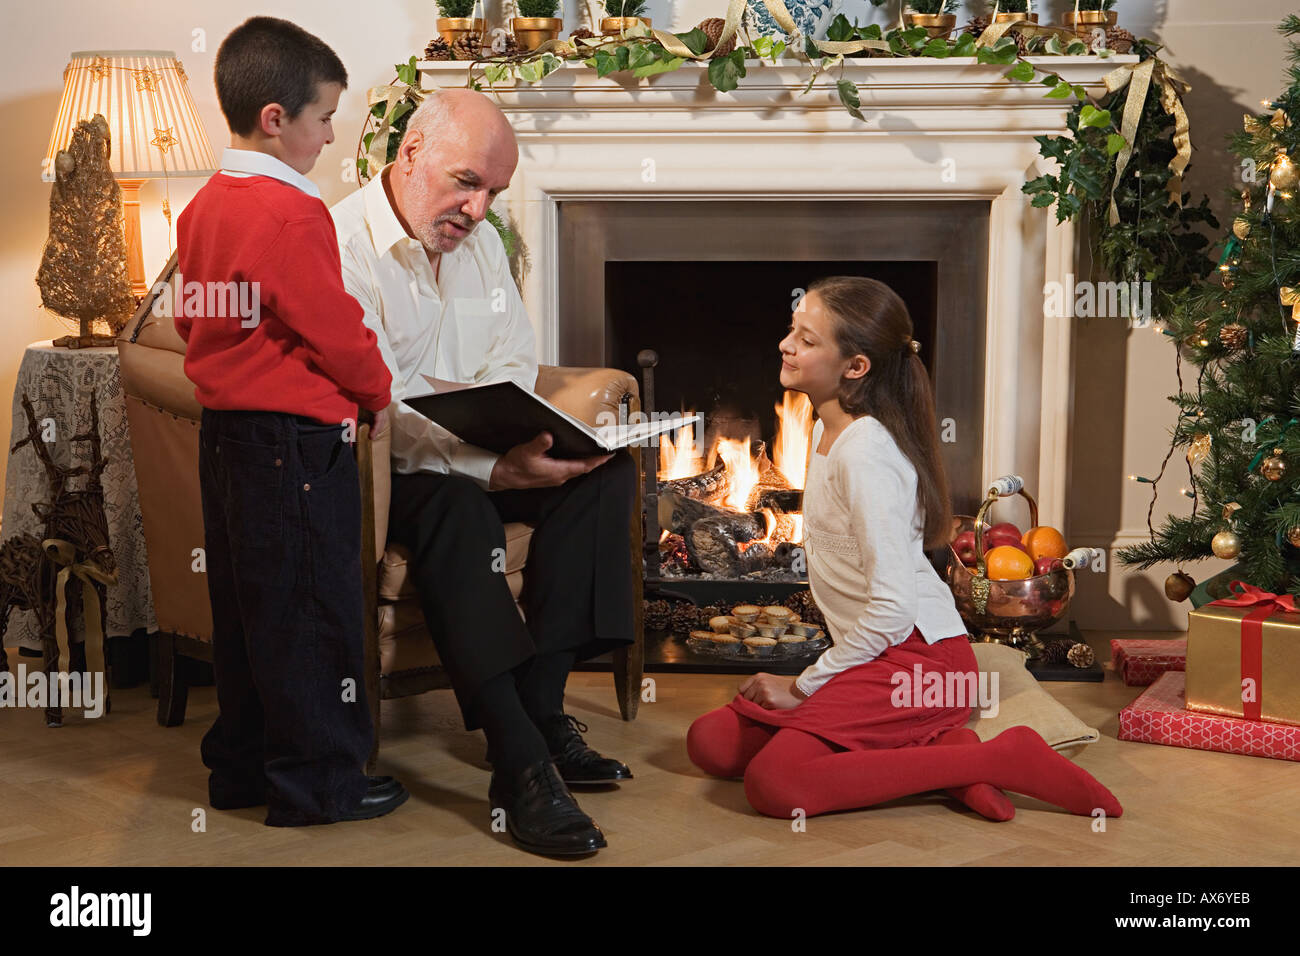 Grandfather telling children a story - Stock Image